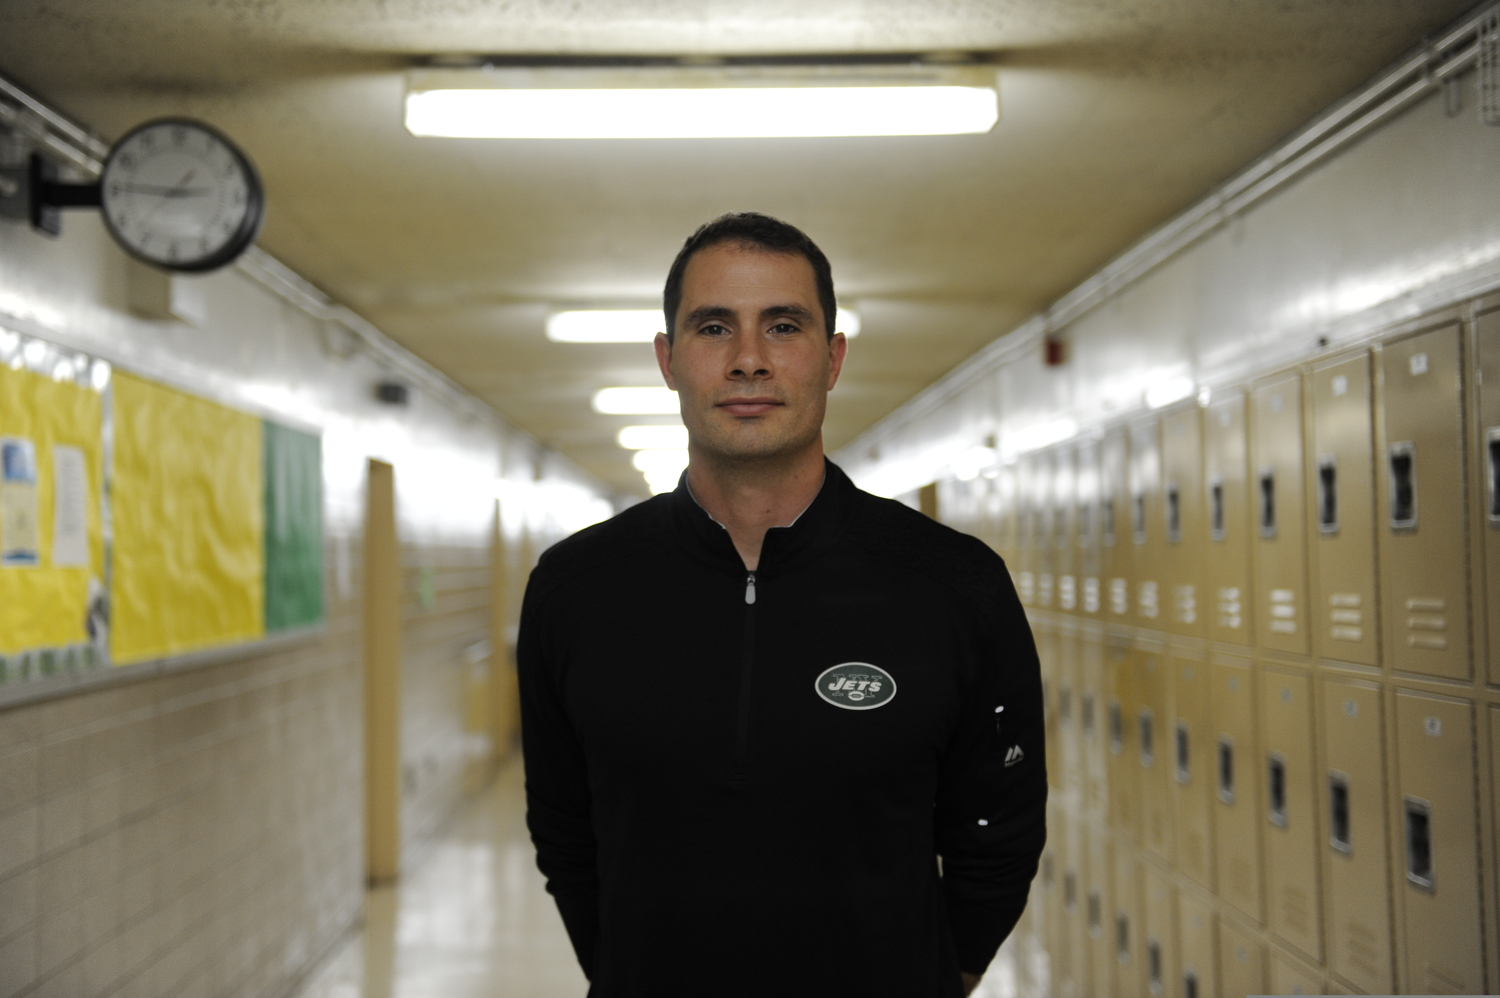 Mr. Dahlem, a health teacher at Bronx Science, is an advocate for universal healthcare.